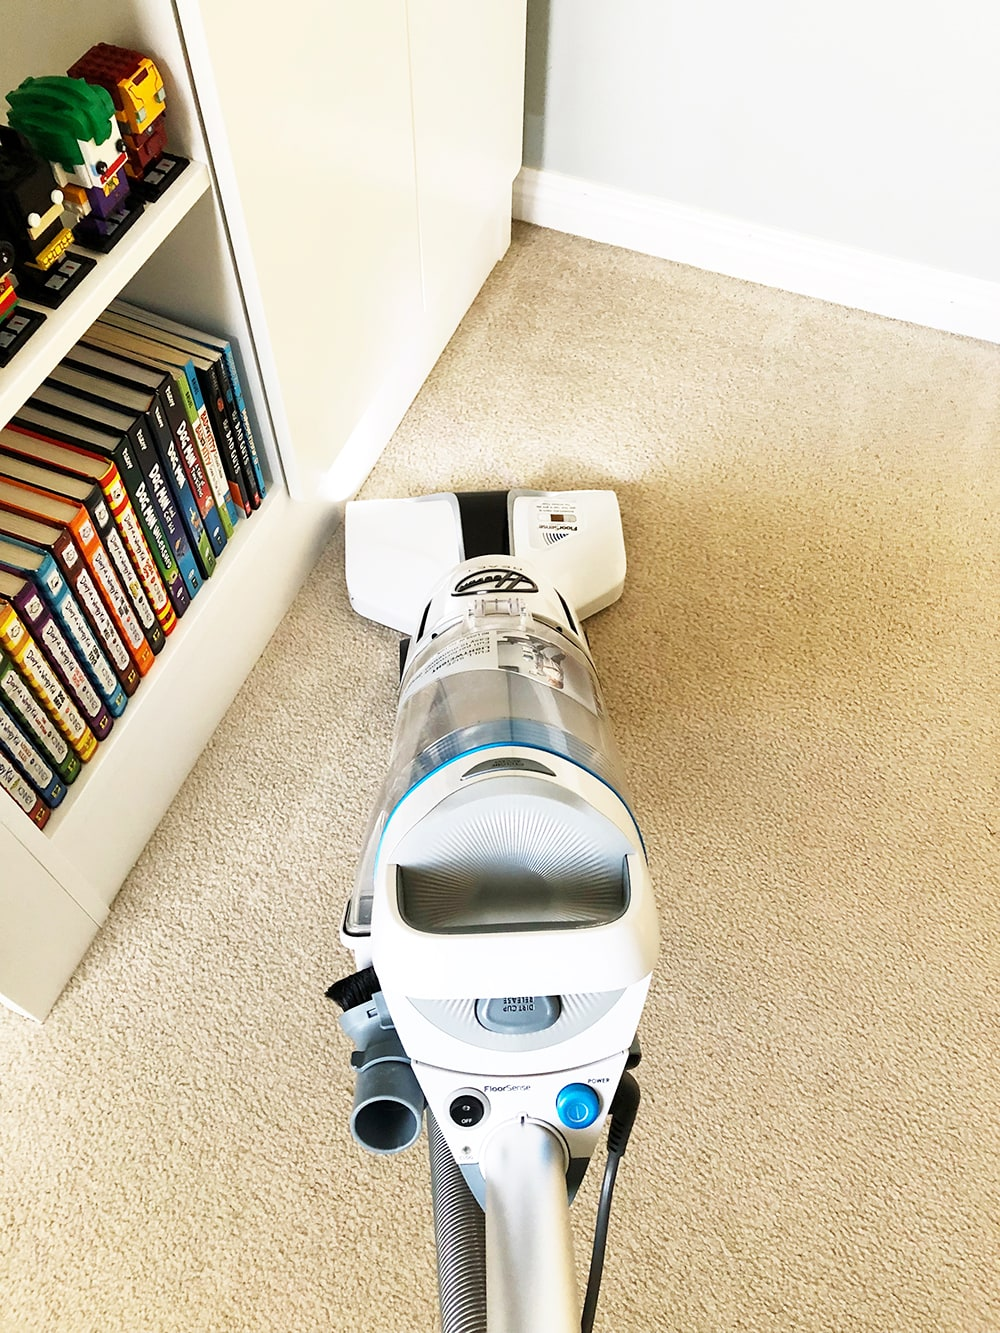 Hoover's REACT™ Upright Vacuum Product Review